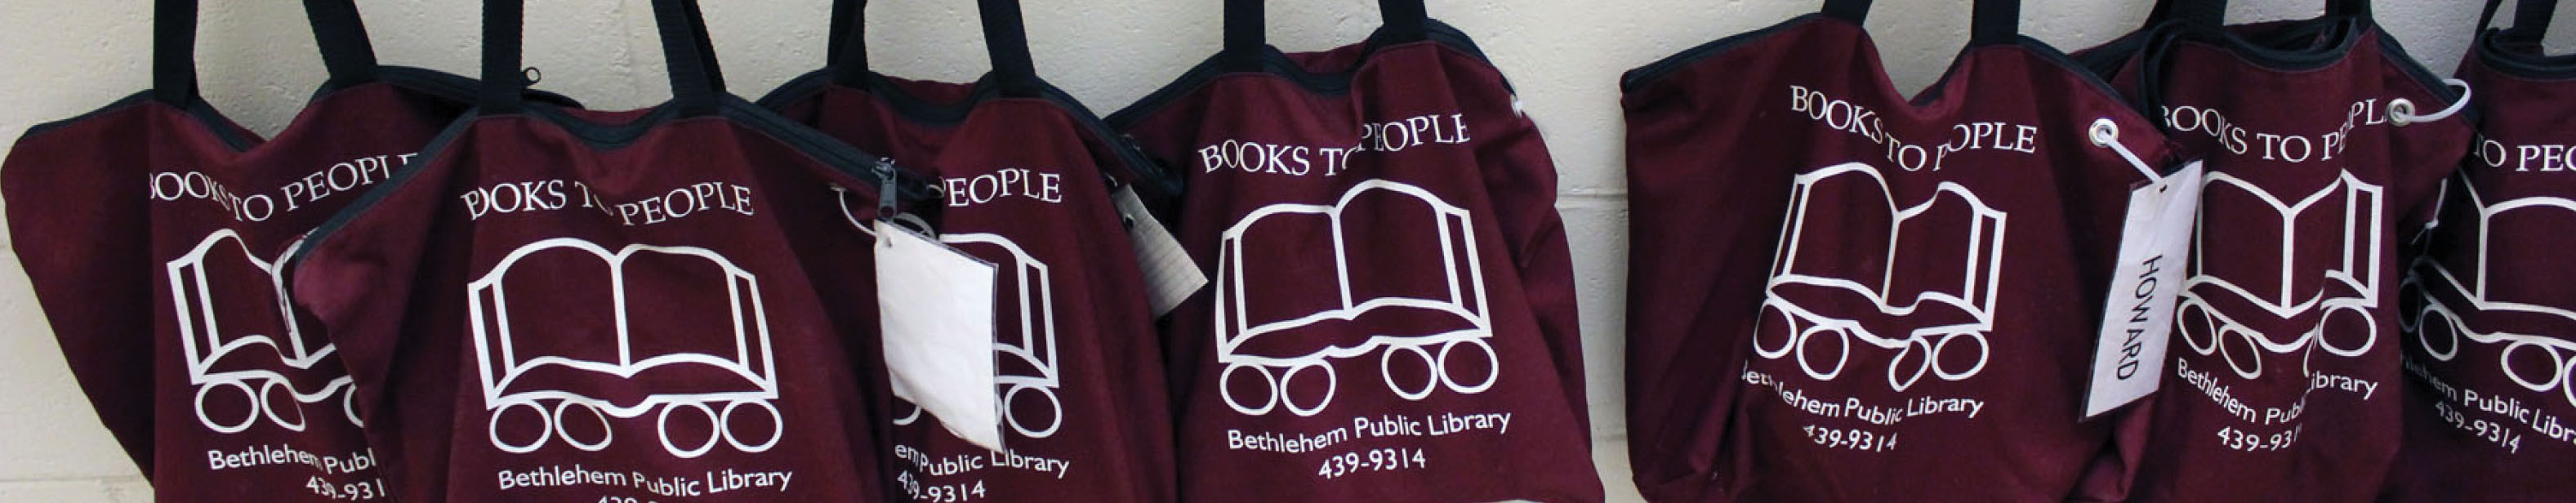 books-to-people-banner